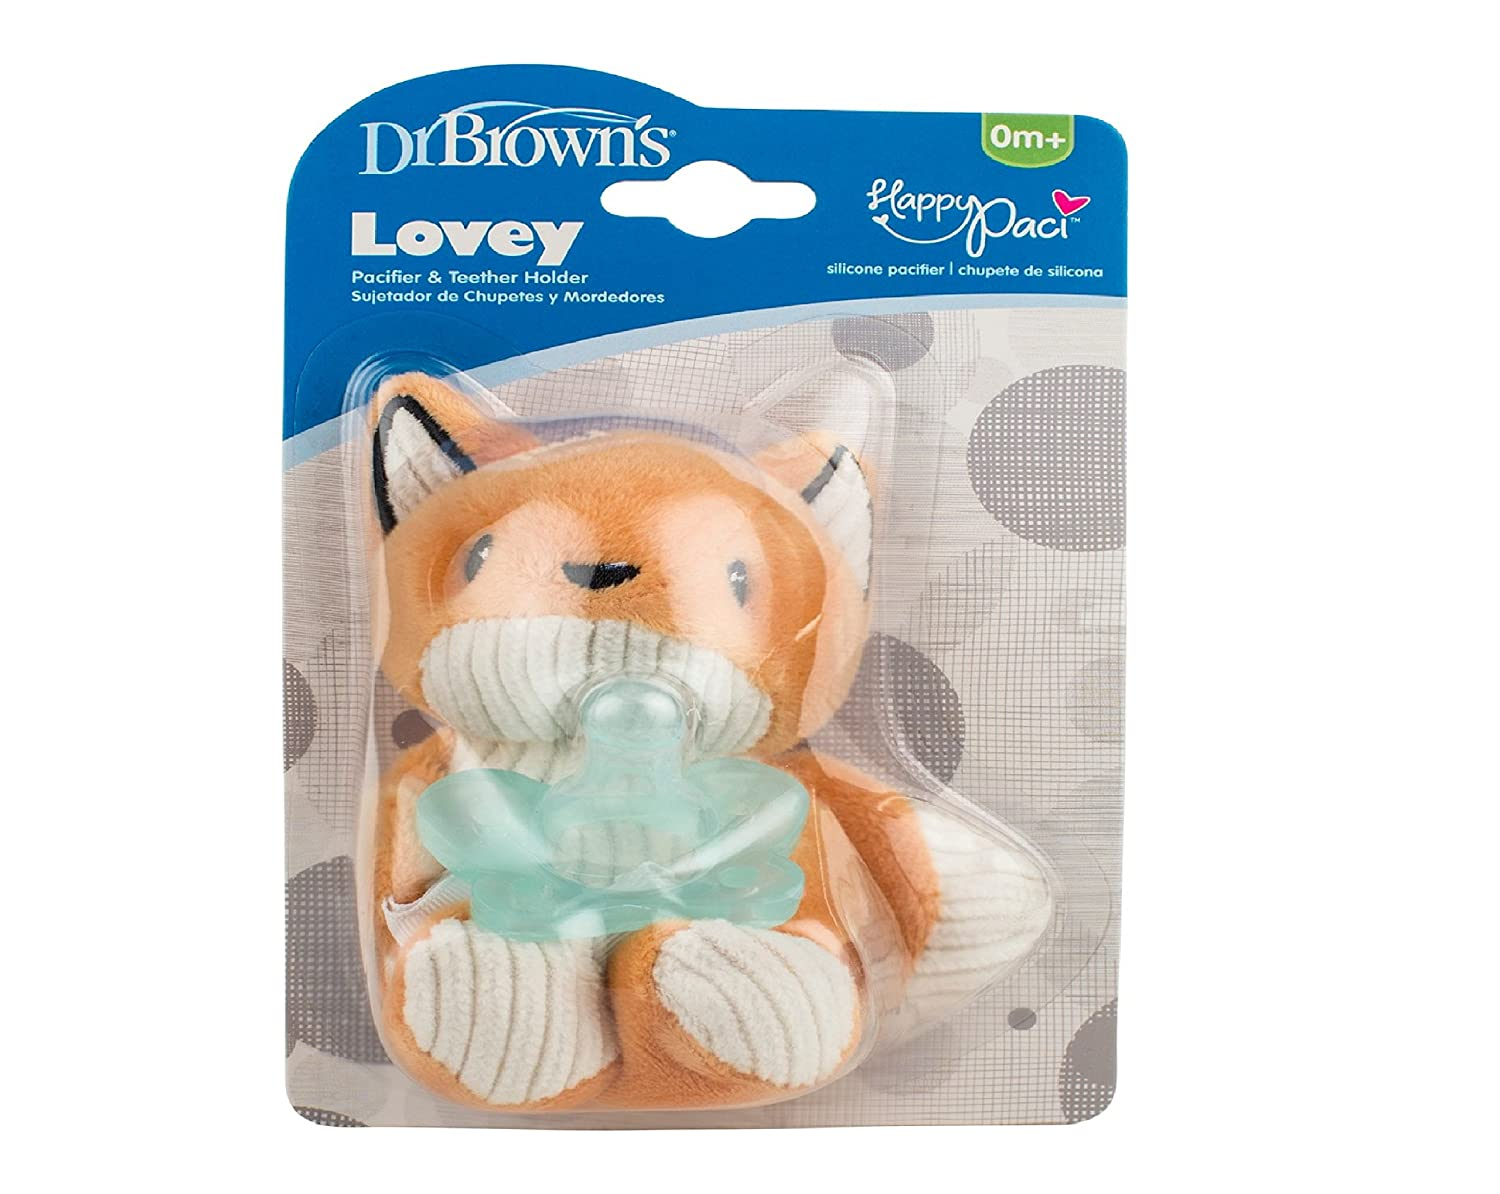 Amazon.com : Dr. Browns Franny the Fox Lovey Pacifier & Teether Holder Orange : Baby